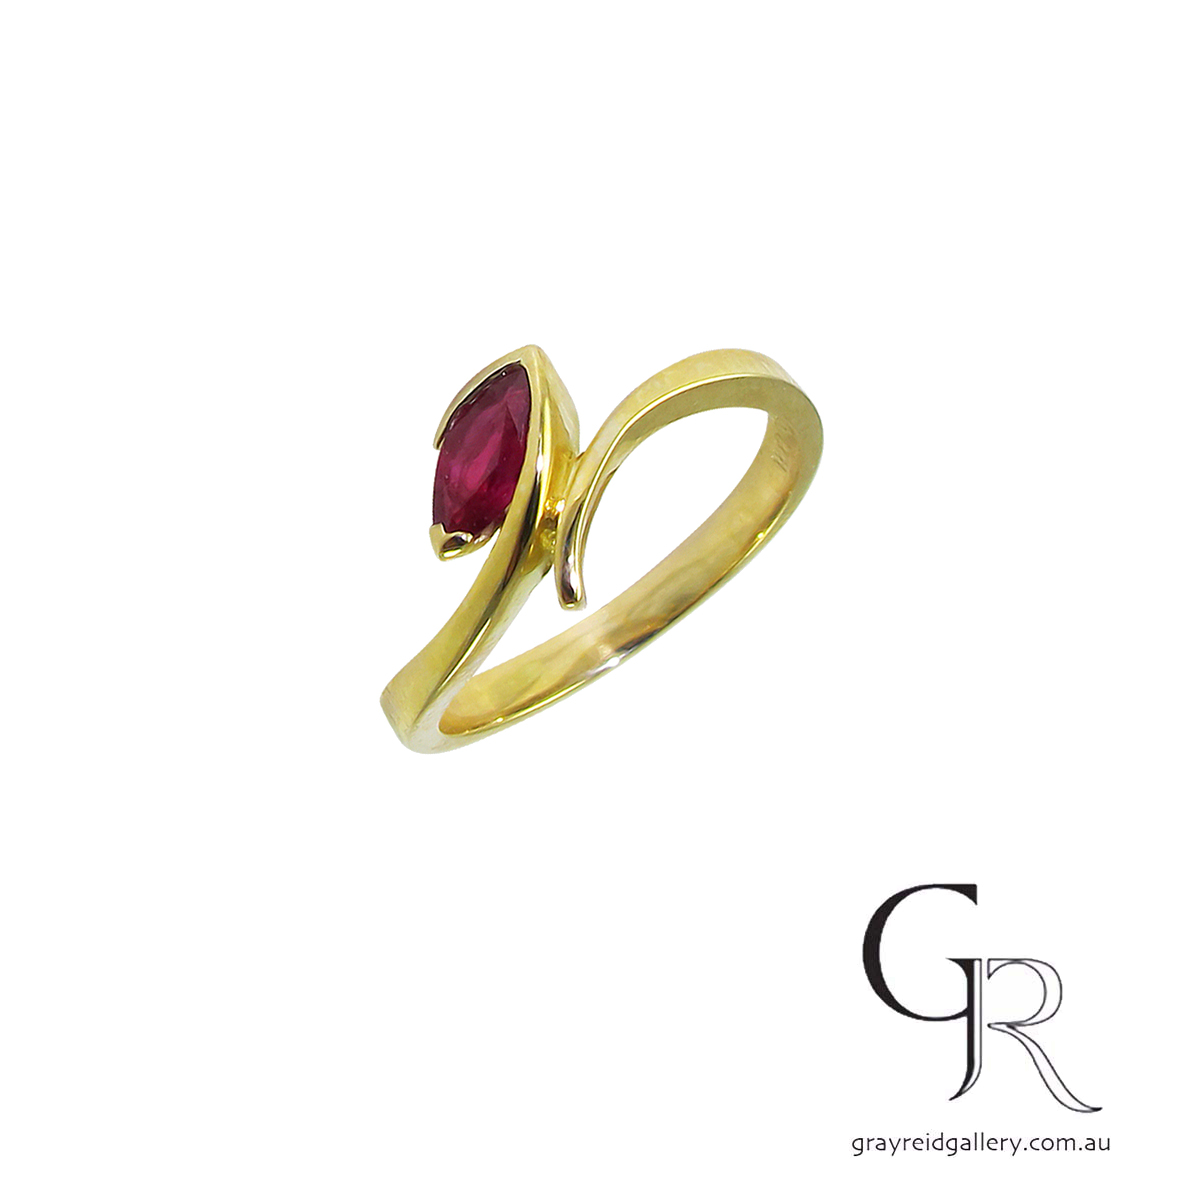 Marquise Cut Ruby Ring